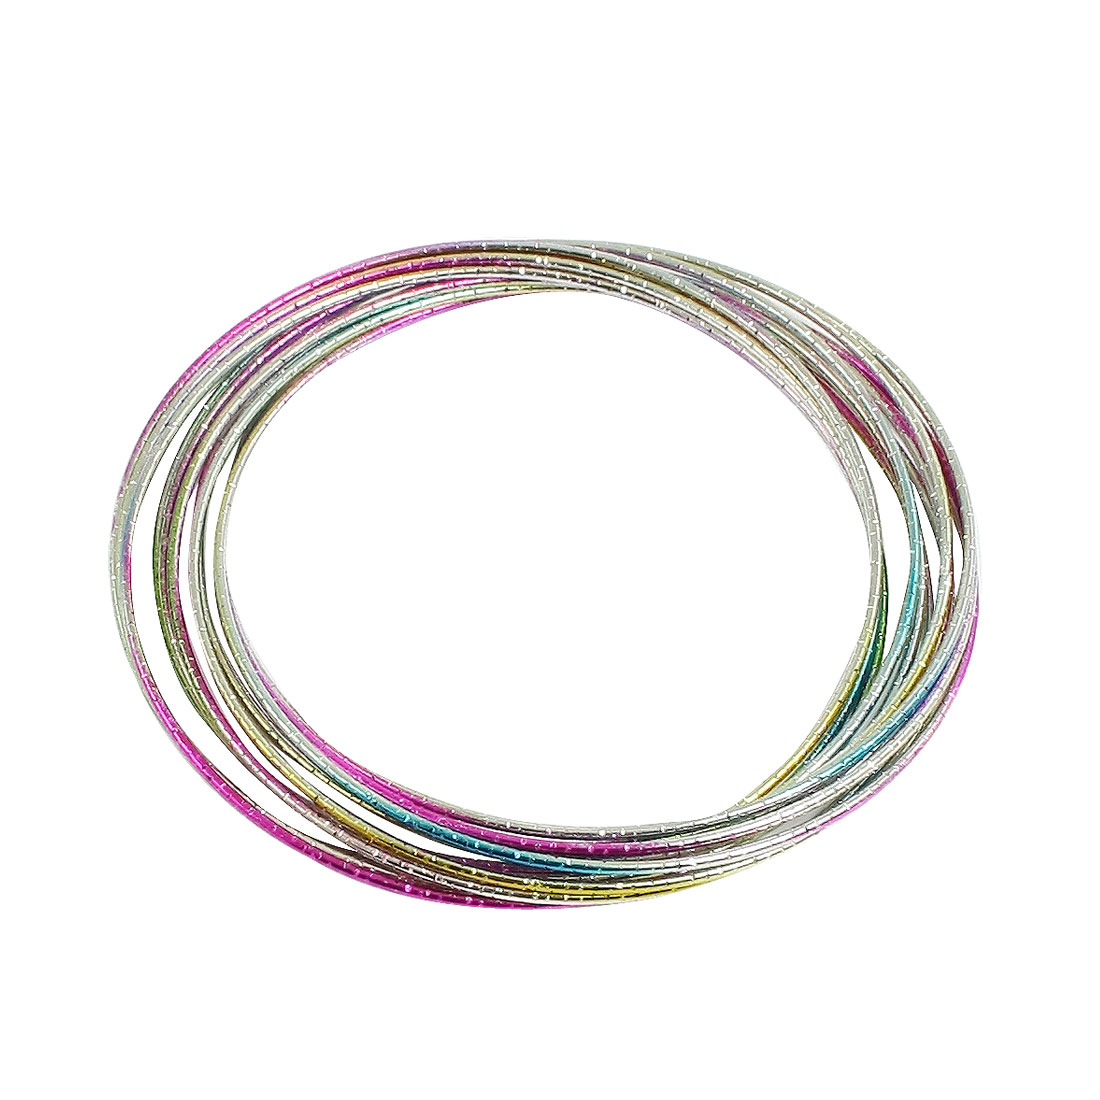 Glossy Colors Metal 12 Loops Circle Interlocking Bangle Bracelet for Ladies